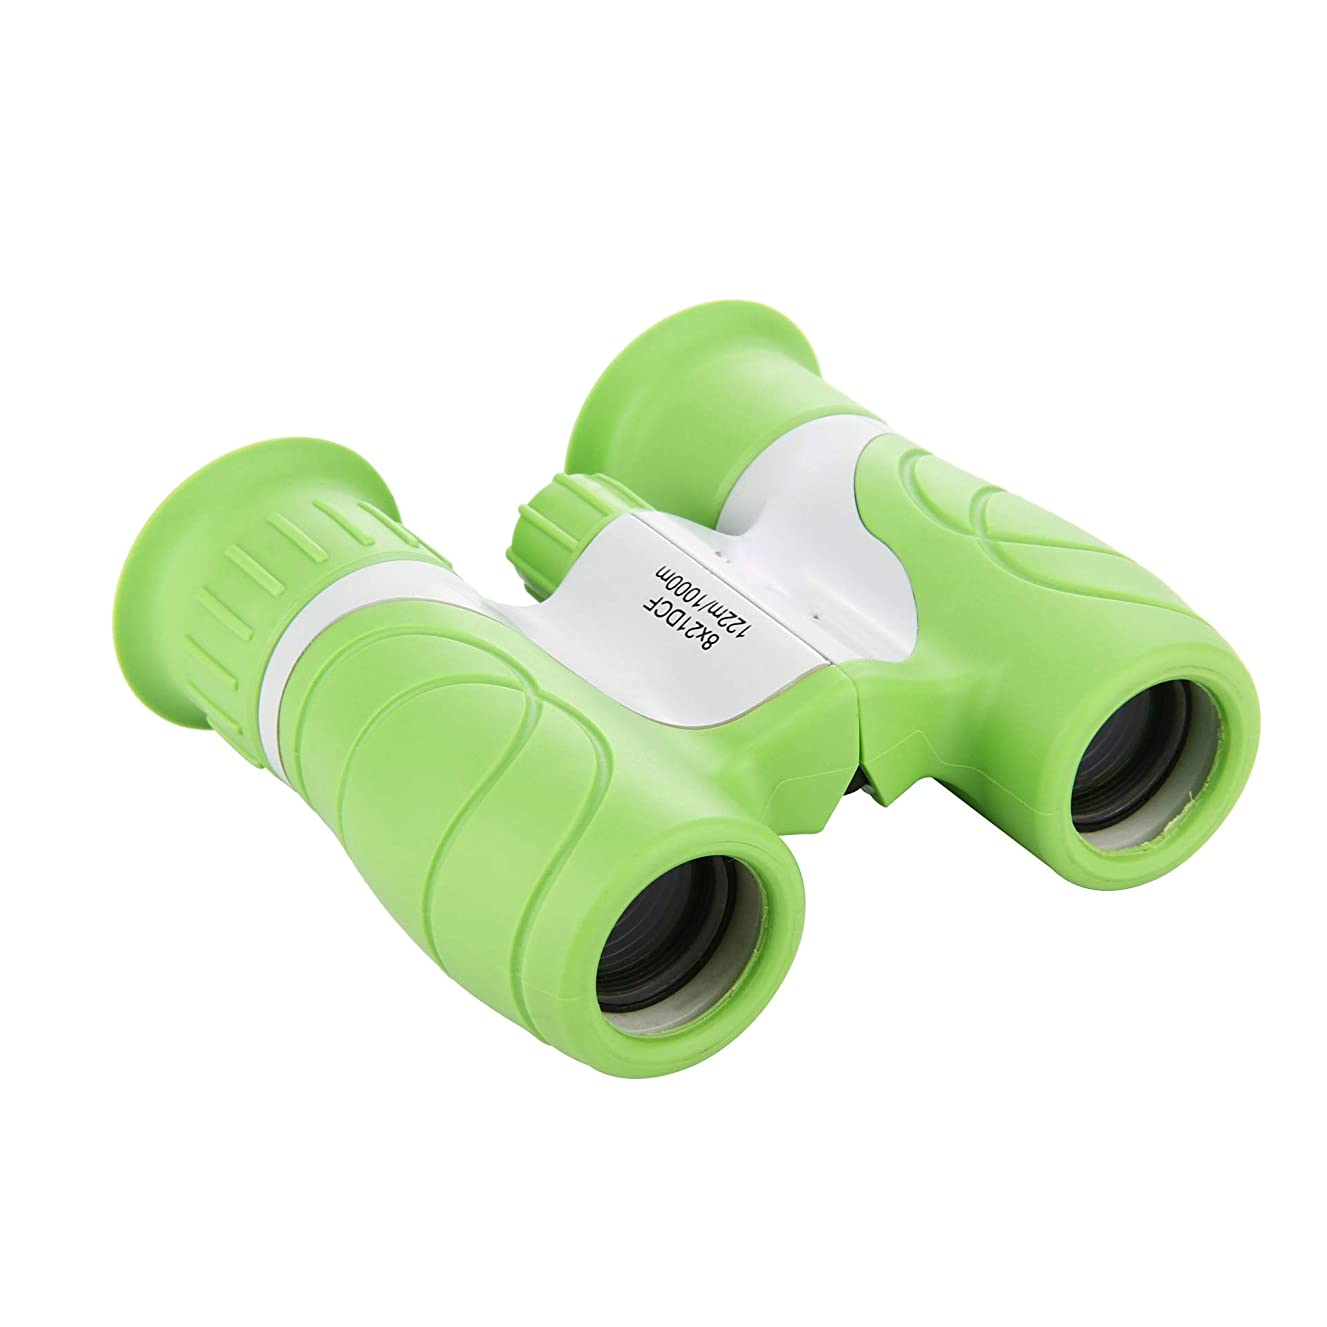 KKlove Kids Binoculars, 8x21 Binoculars for Kids Compact Binoculars Toy for Boys and Girls with High-Resolution, Best for Bird Watching,Hiking,Outdoor Games,Camping,Learning